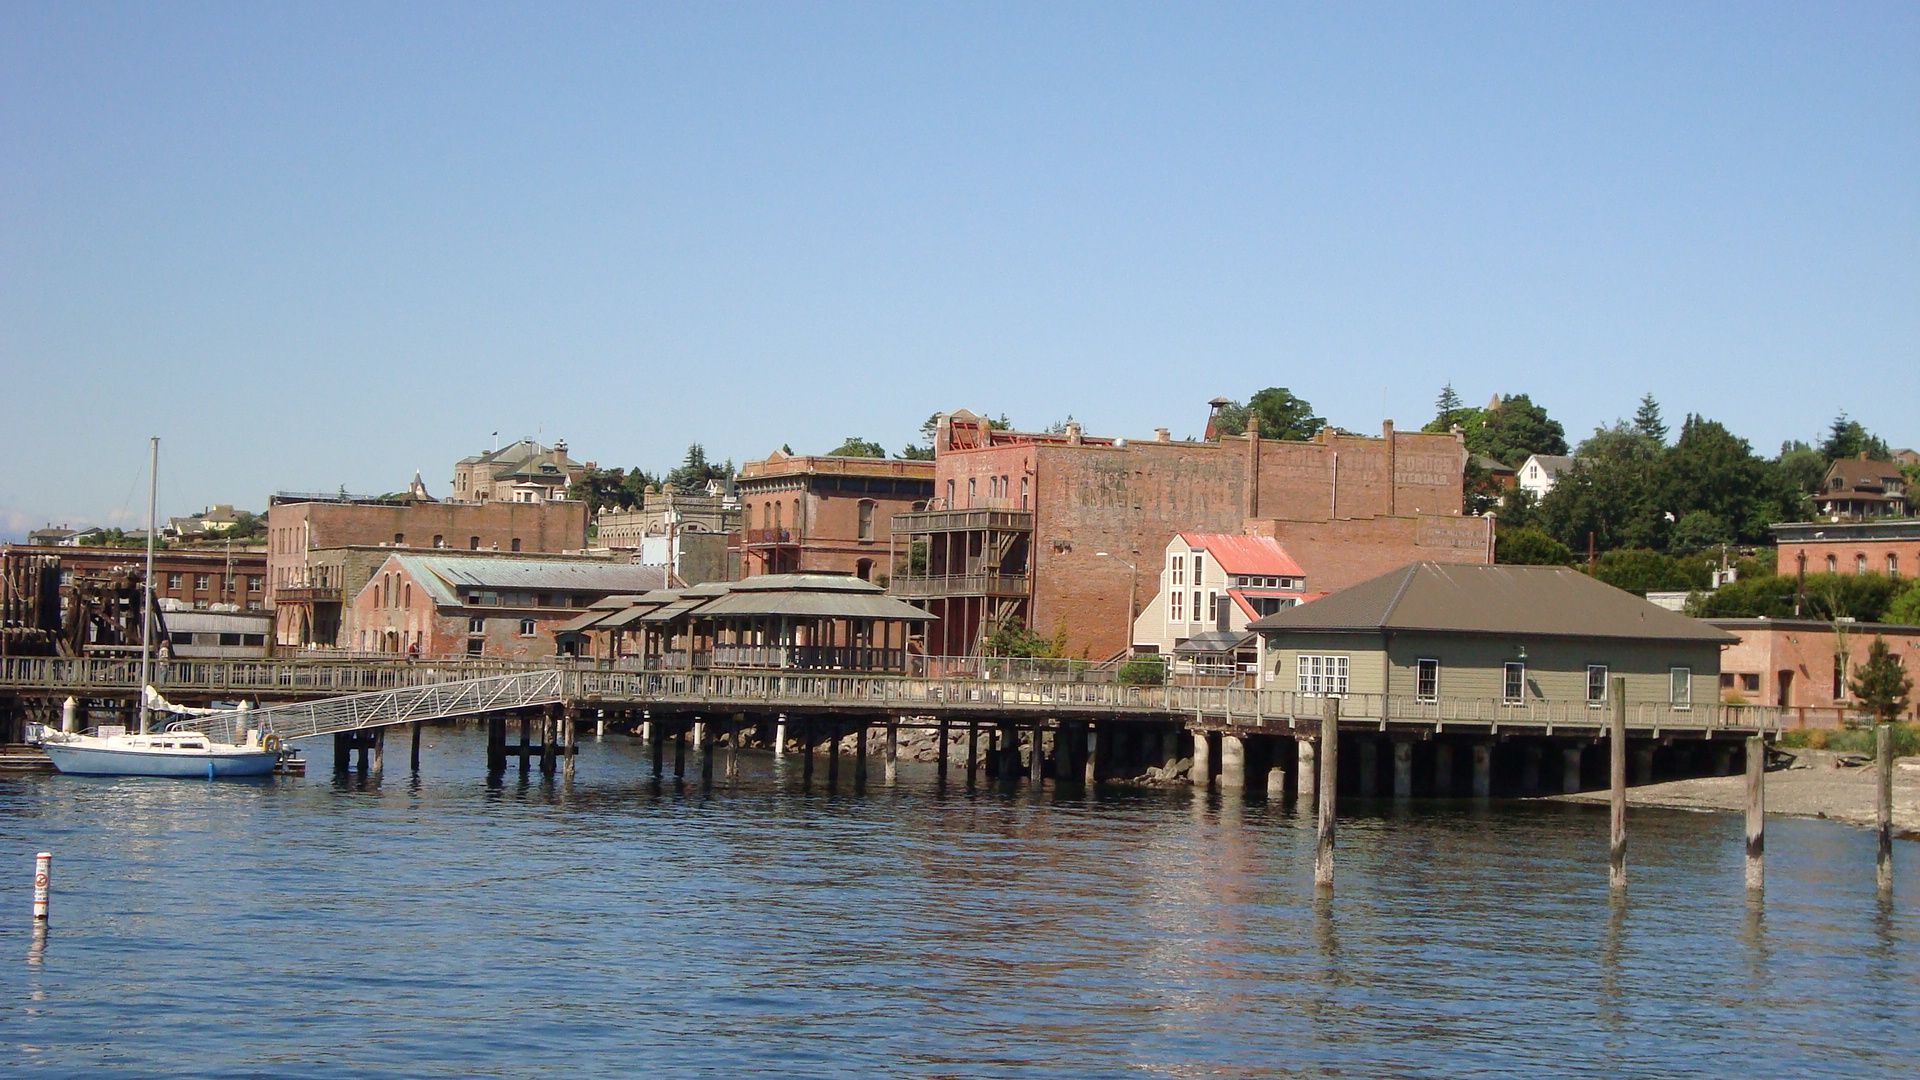 port townsend wa pictures posters news and videos on. Black Bedroom Furniture Sets. Home Design Ideas